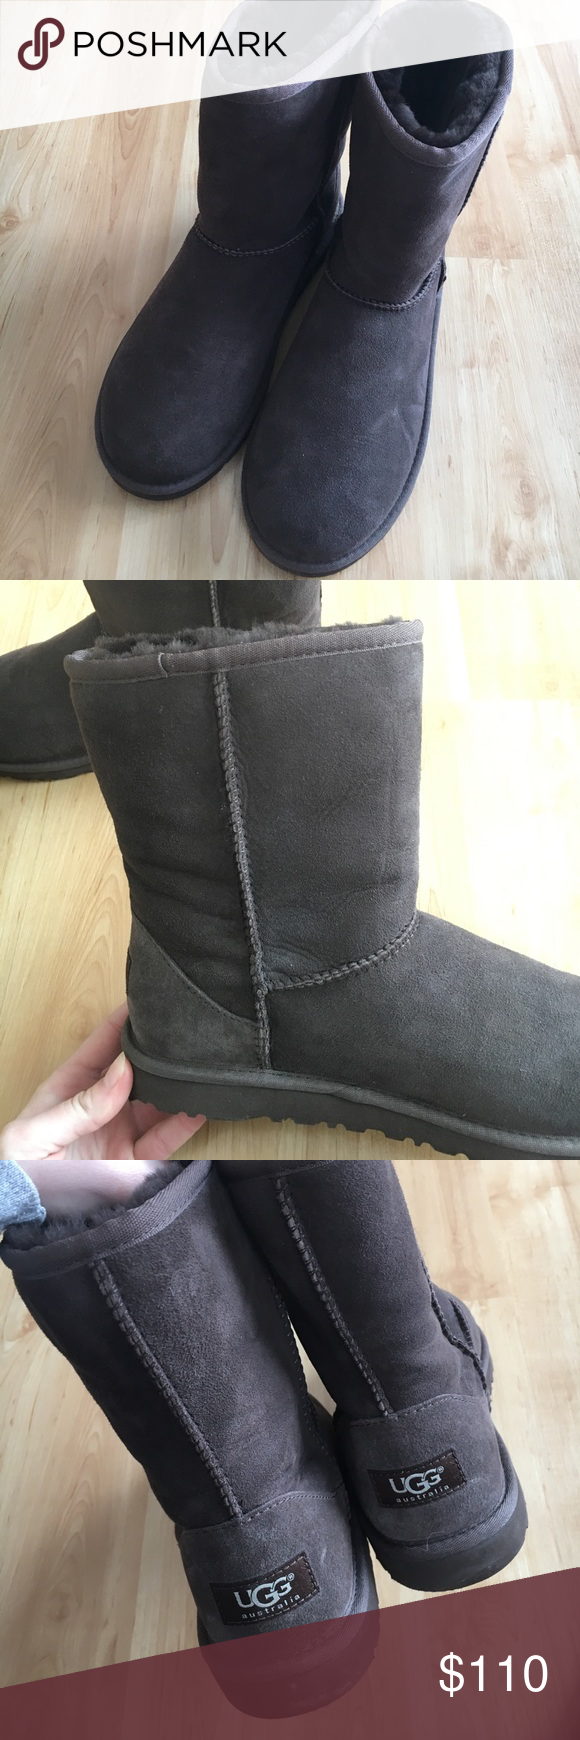 Brown (chocolate) uggs Worn a few times no stains or salt marks! excellent shape UGG Shoes Winter & Rain Boots